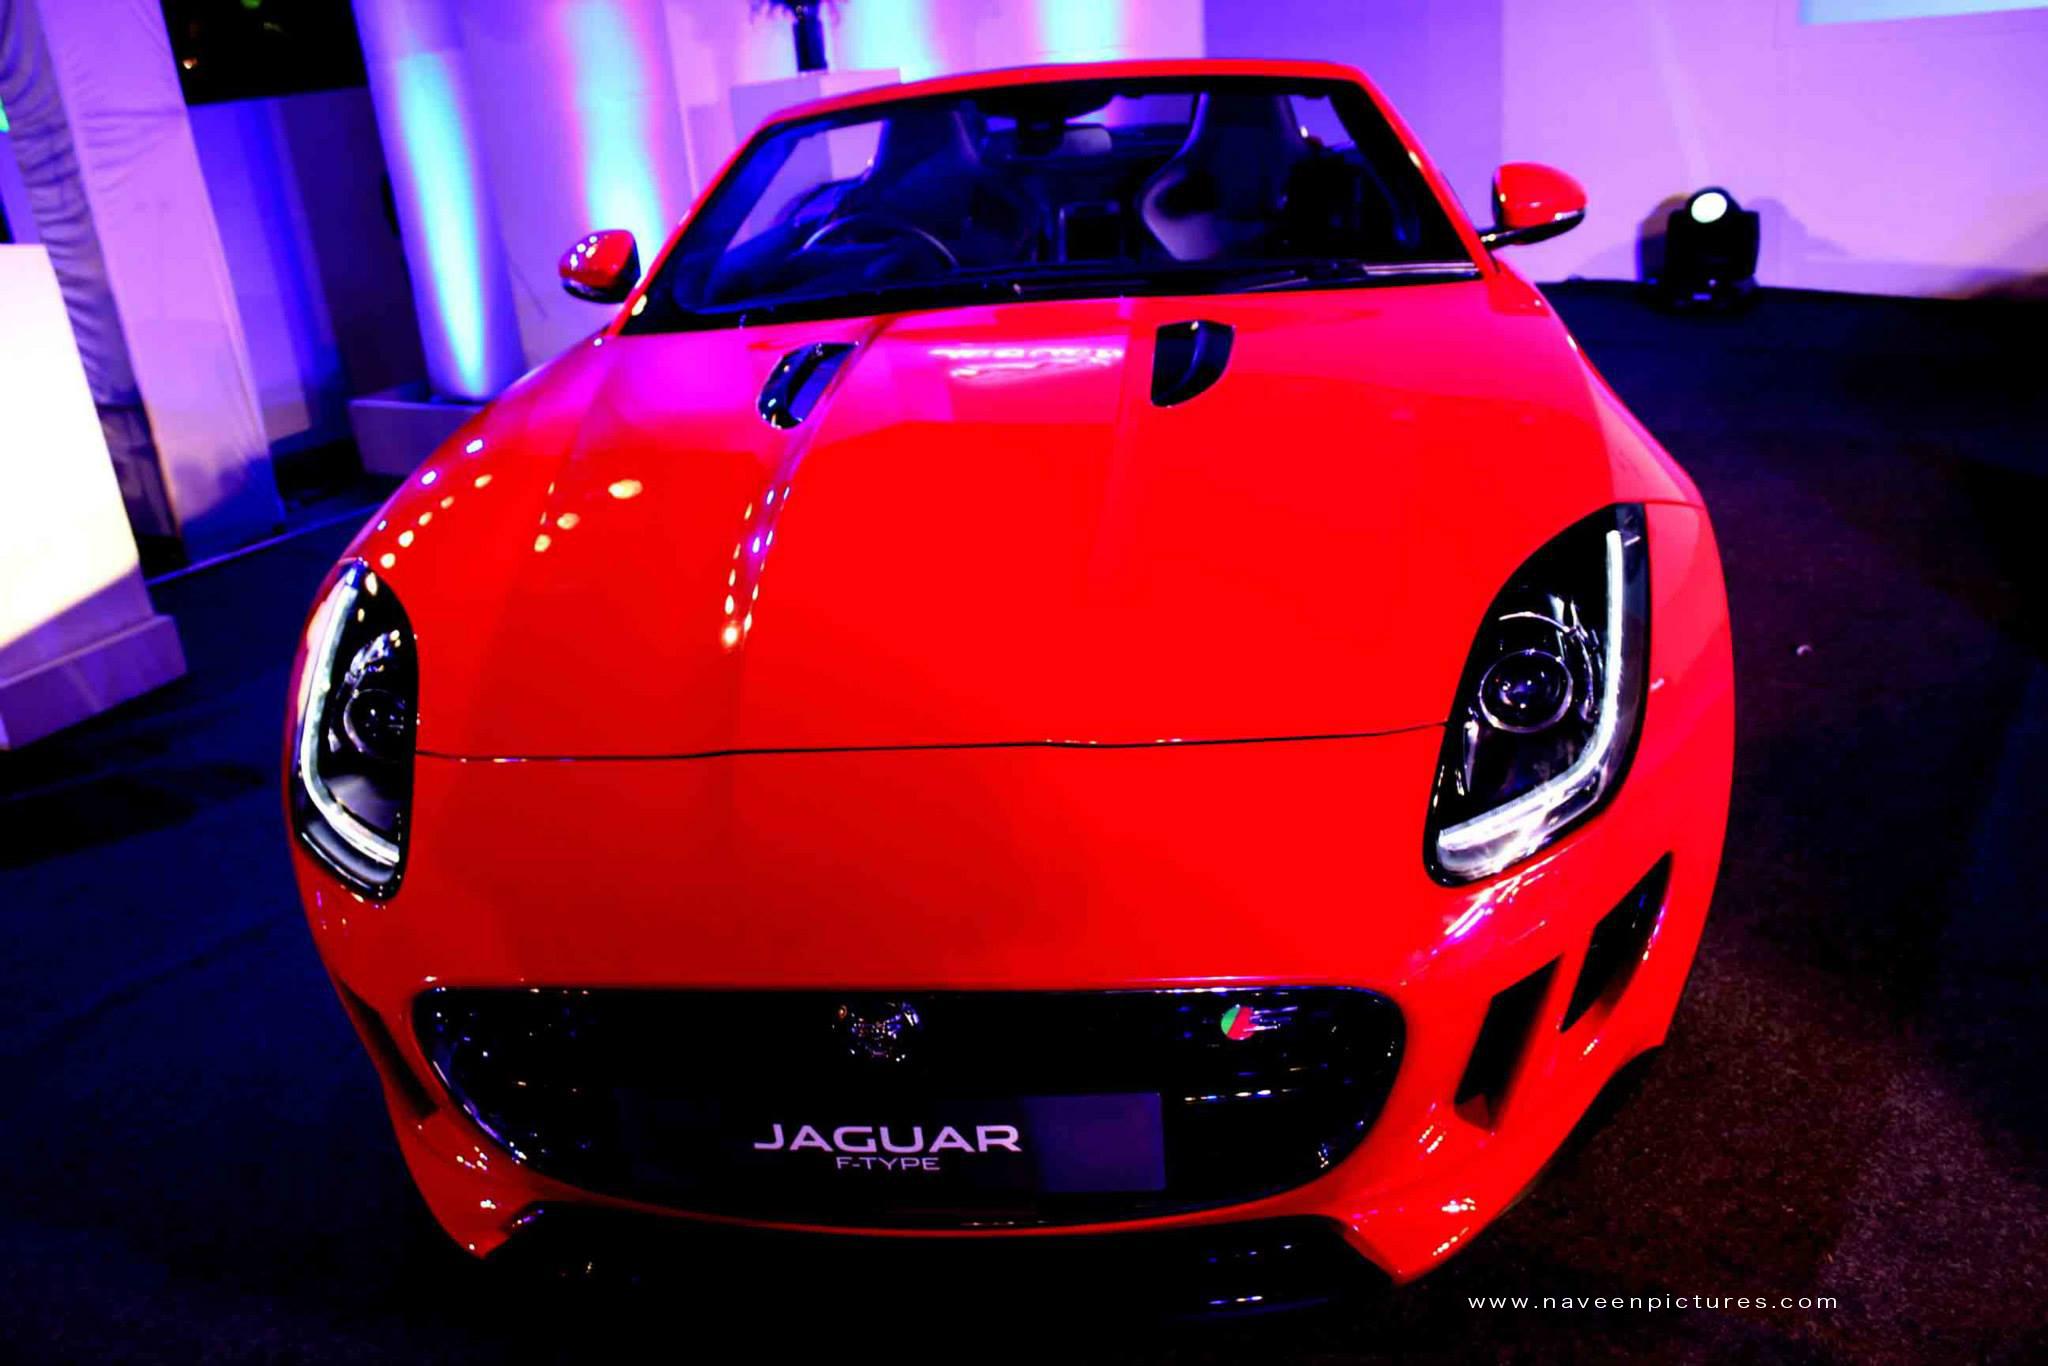 naveen picture event jaguar